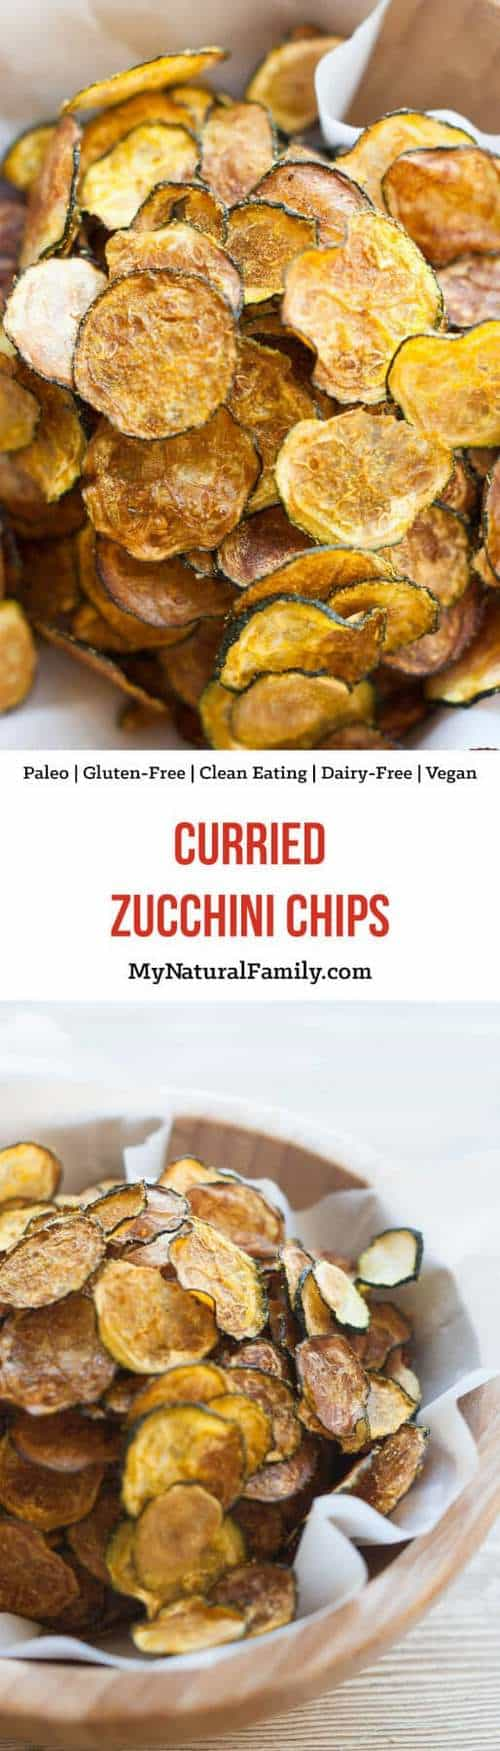 Whole30 Curried Zucchini Chips